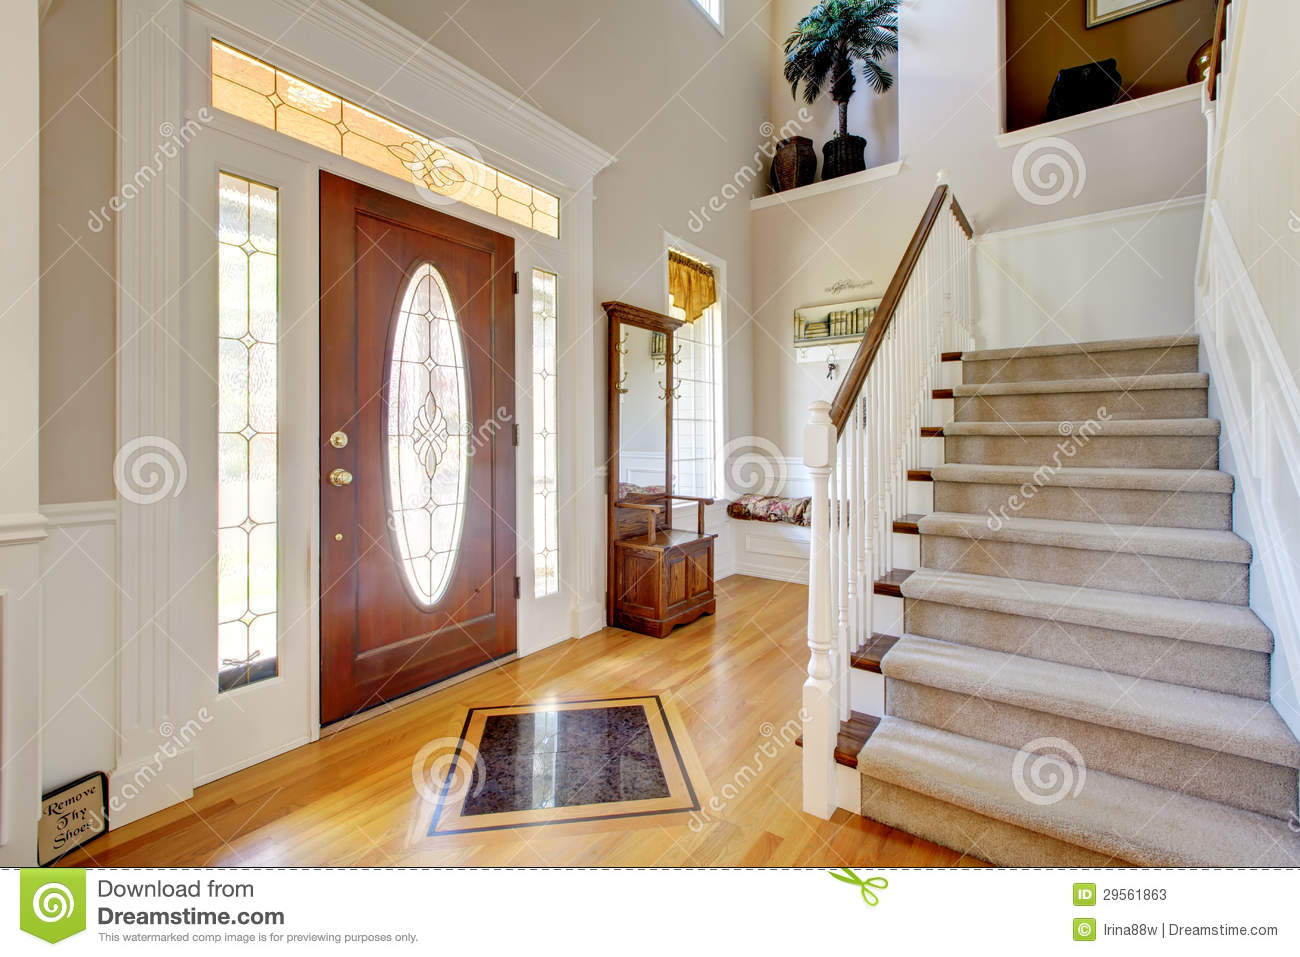 More keywords like interior stair entrance design other people like